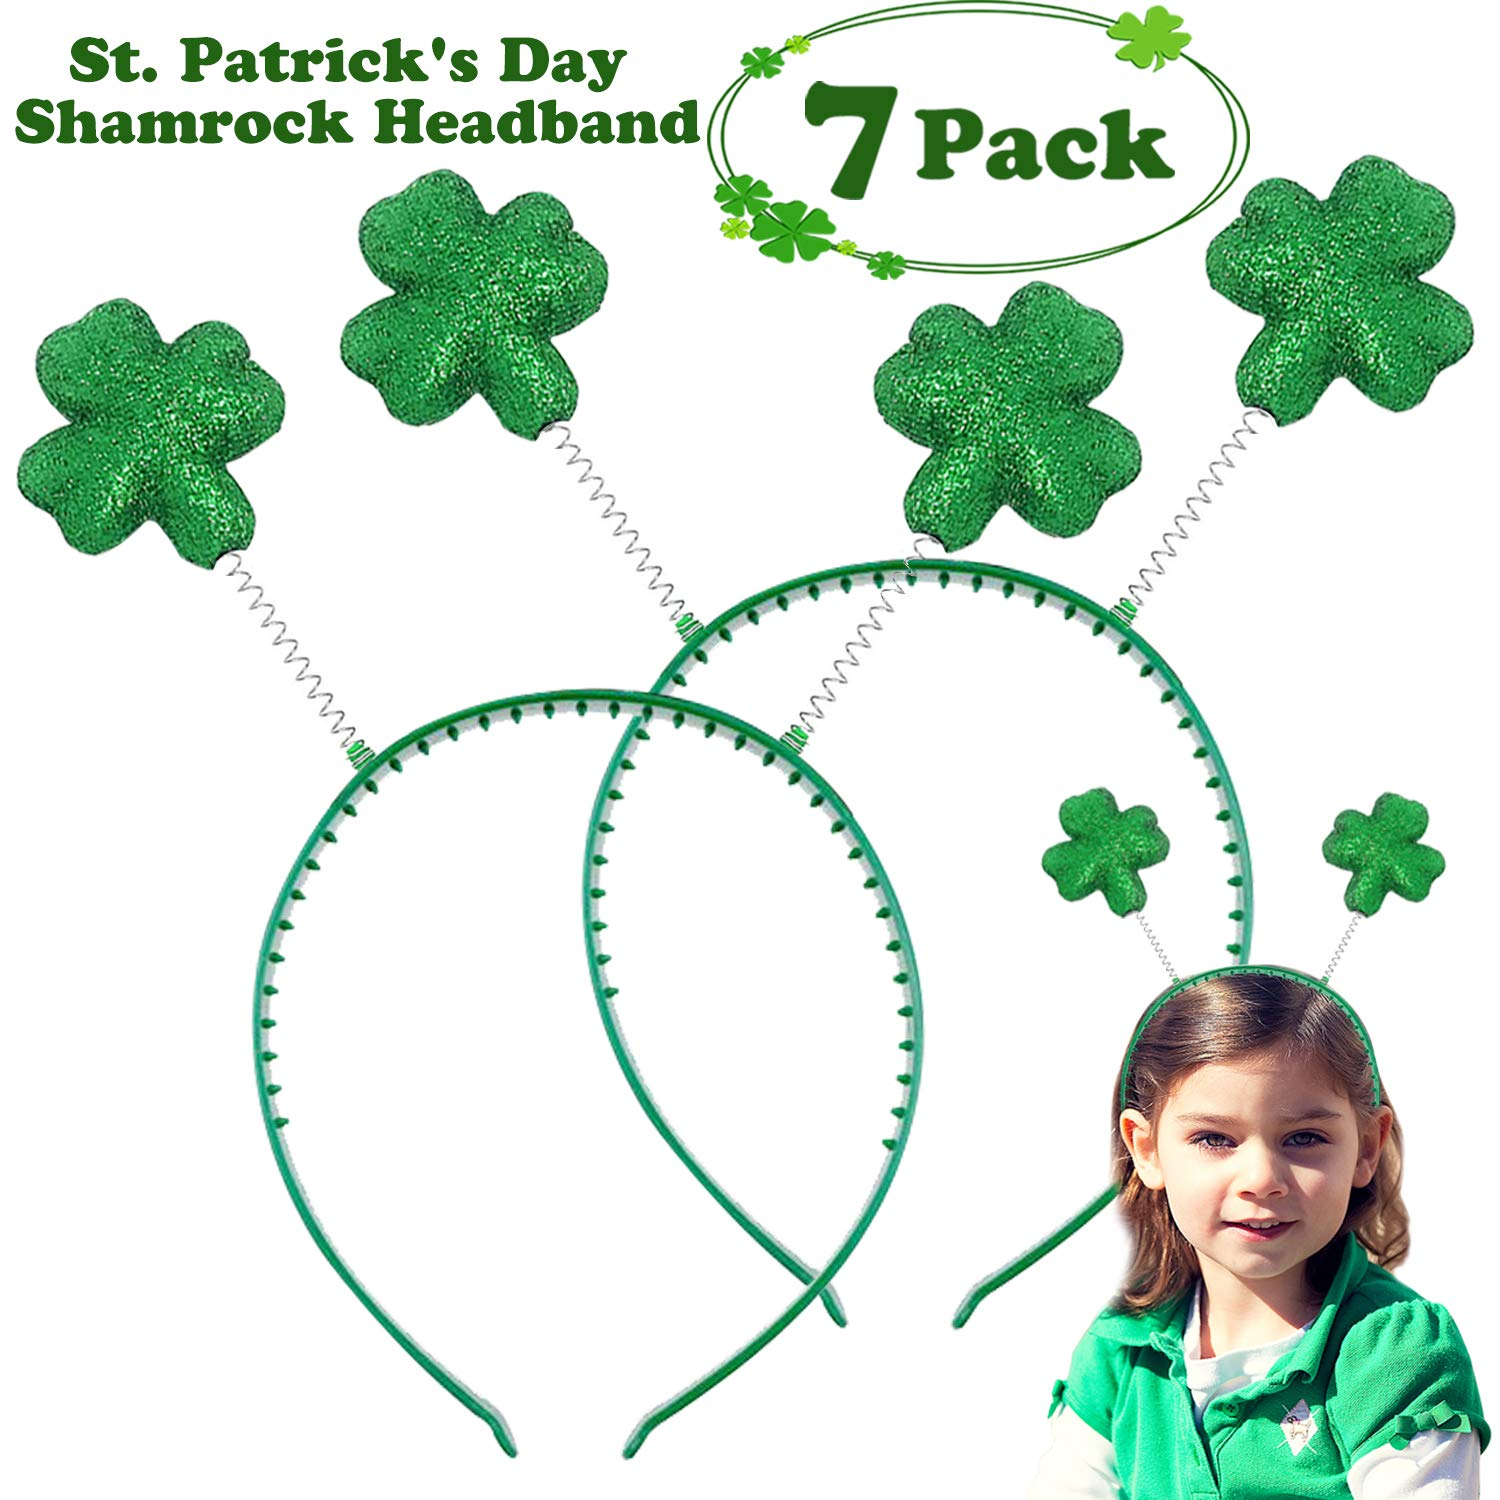 St. Patricks Day Party Favors - 7 Pack Green Shamrock Head Boppers Twinkle Leprechaun Hat Headbands Irish Party Costume Accessory for Men, Women and Kids